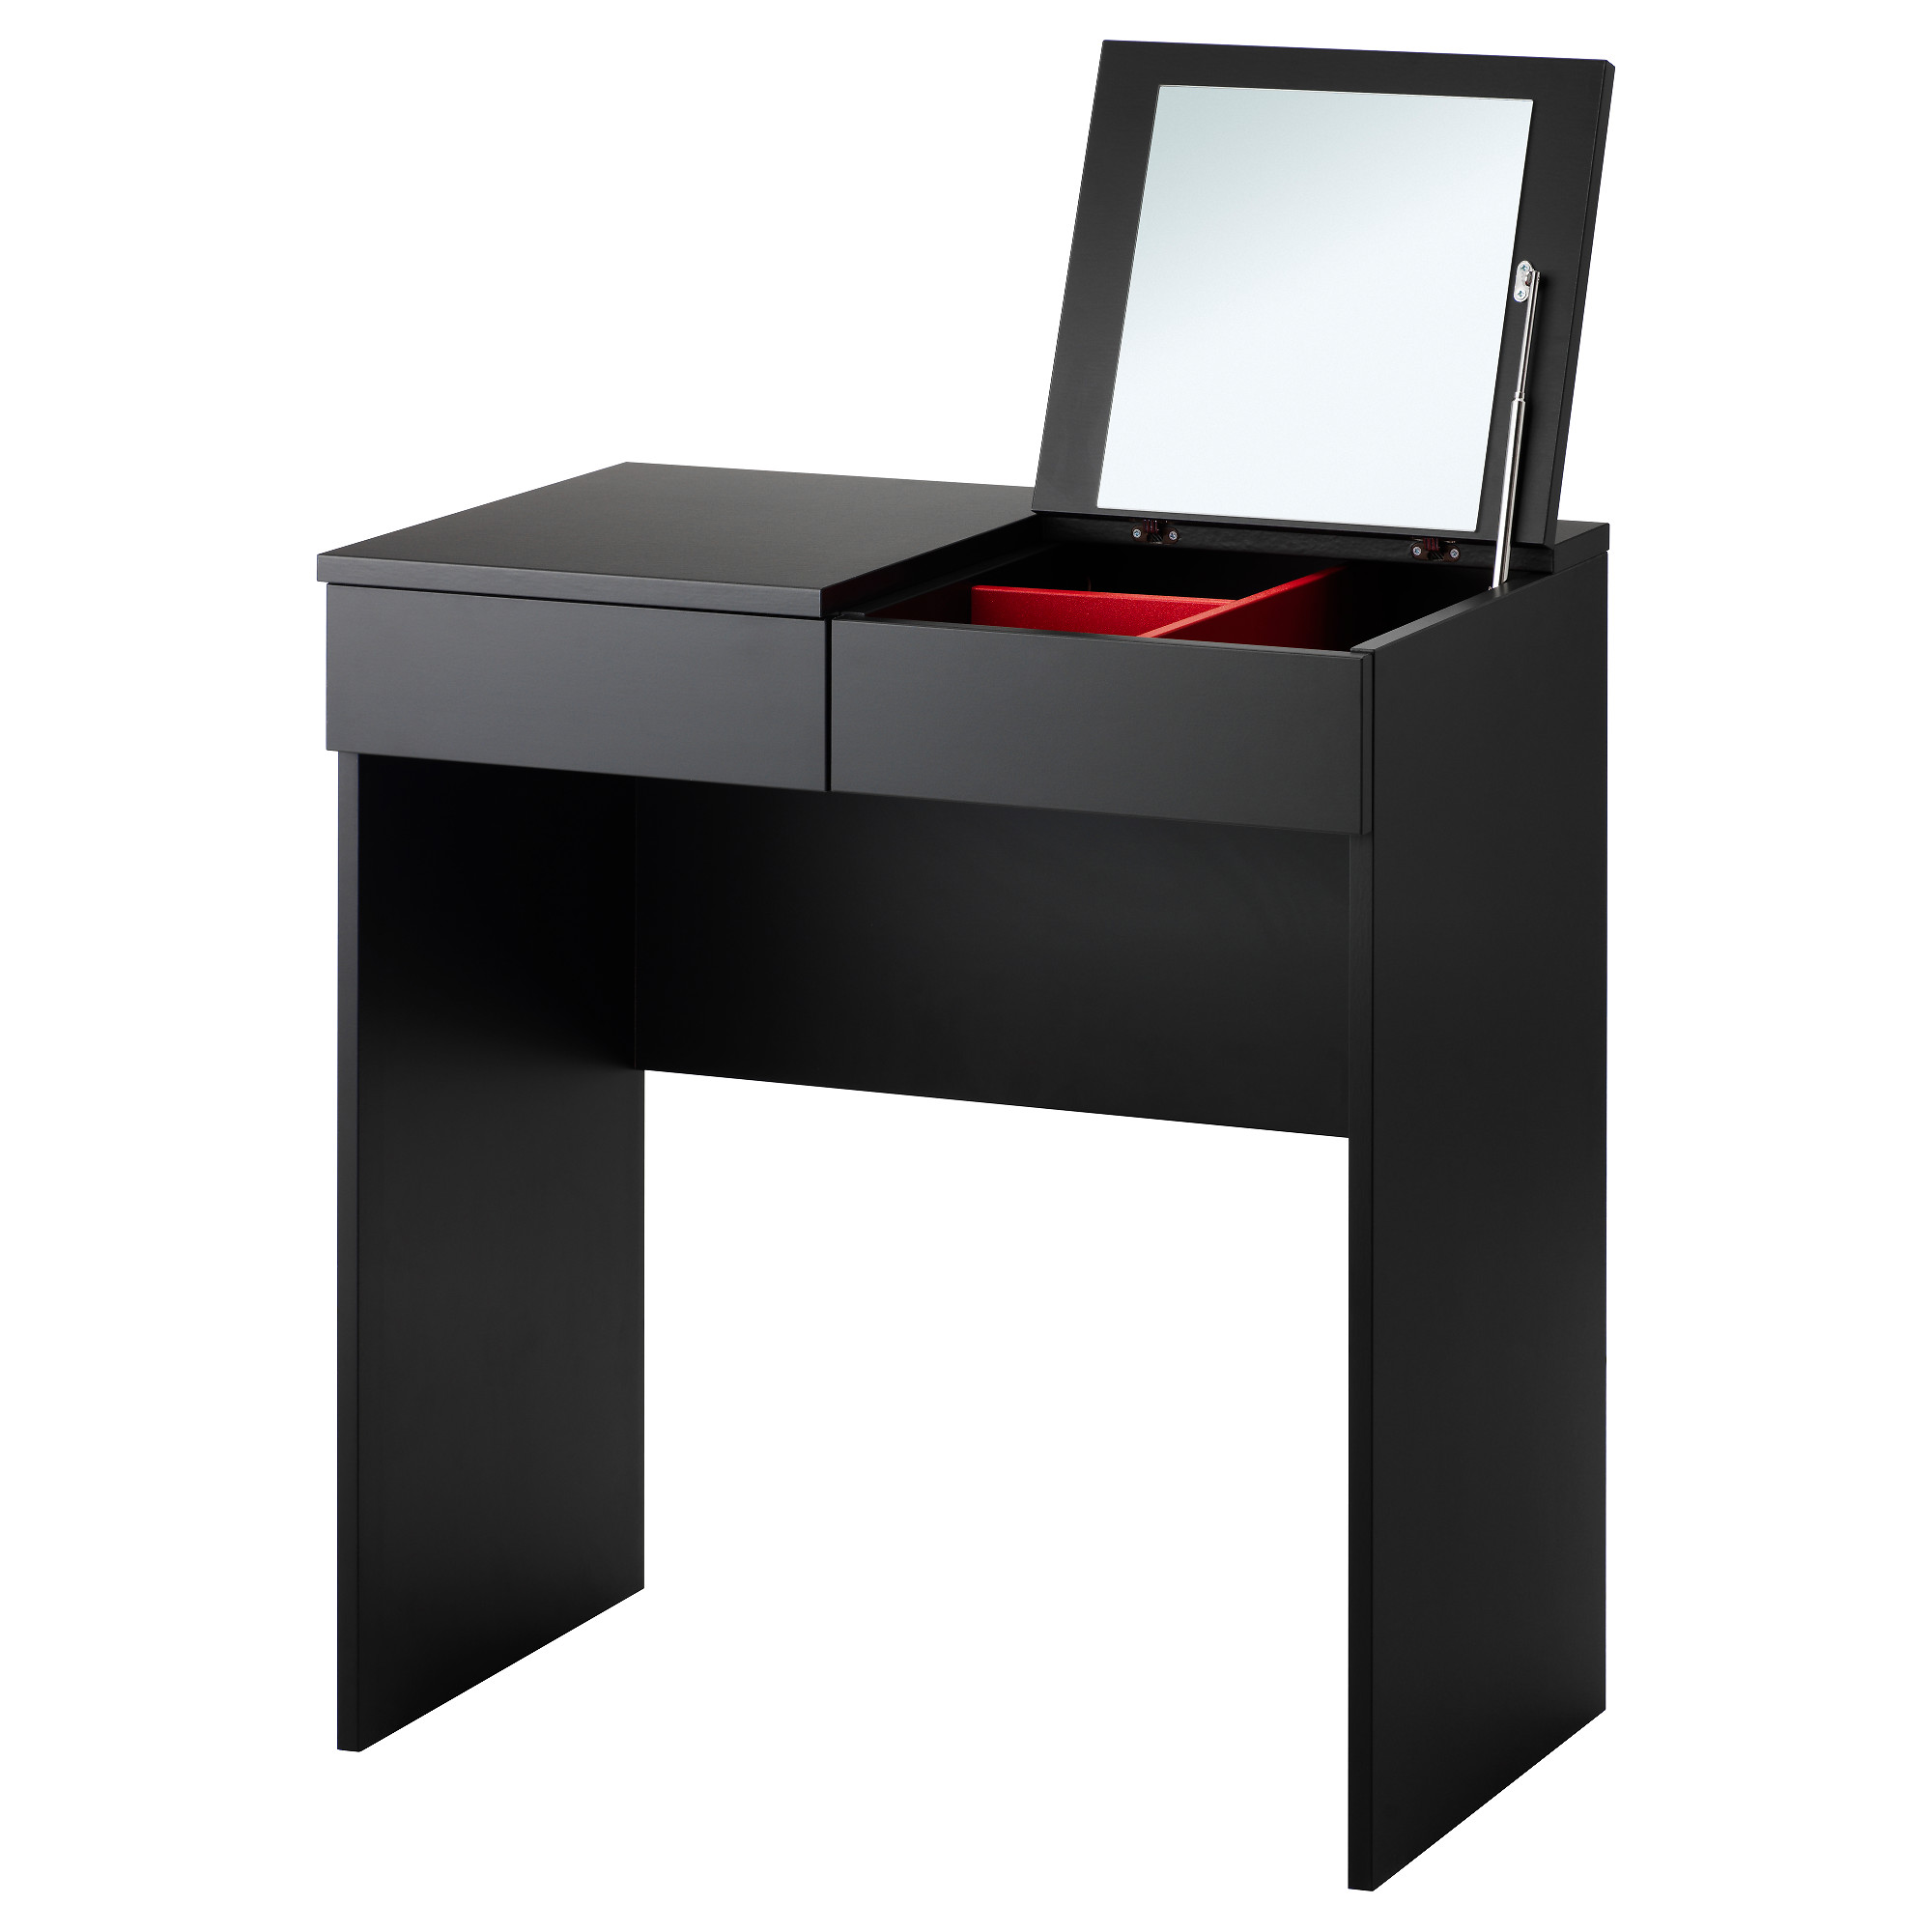 Dressing Tables Tables IKEA - Black gloss dressing table